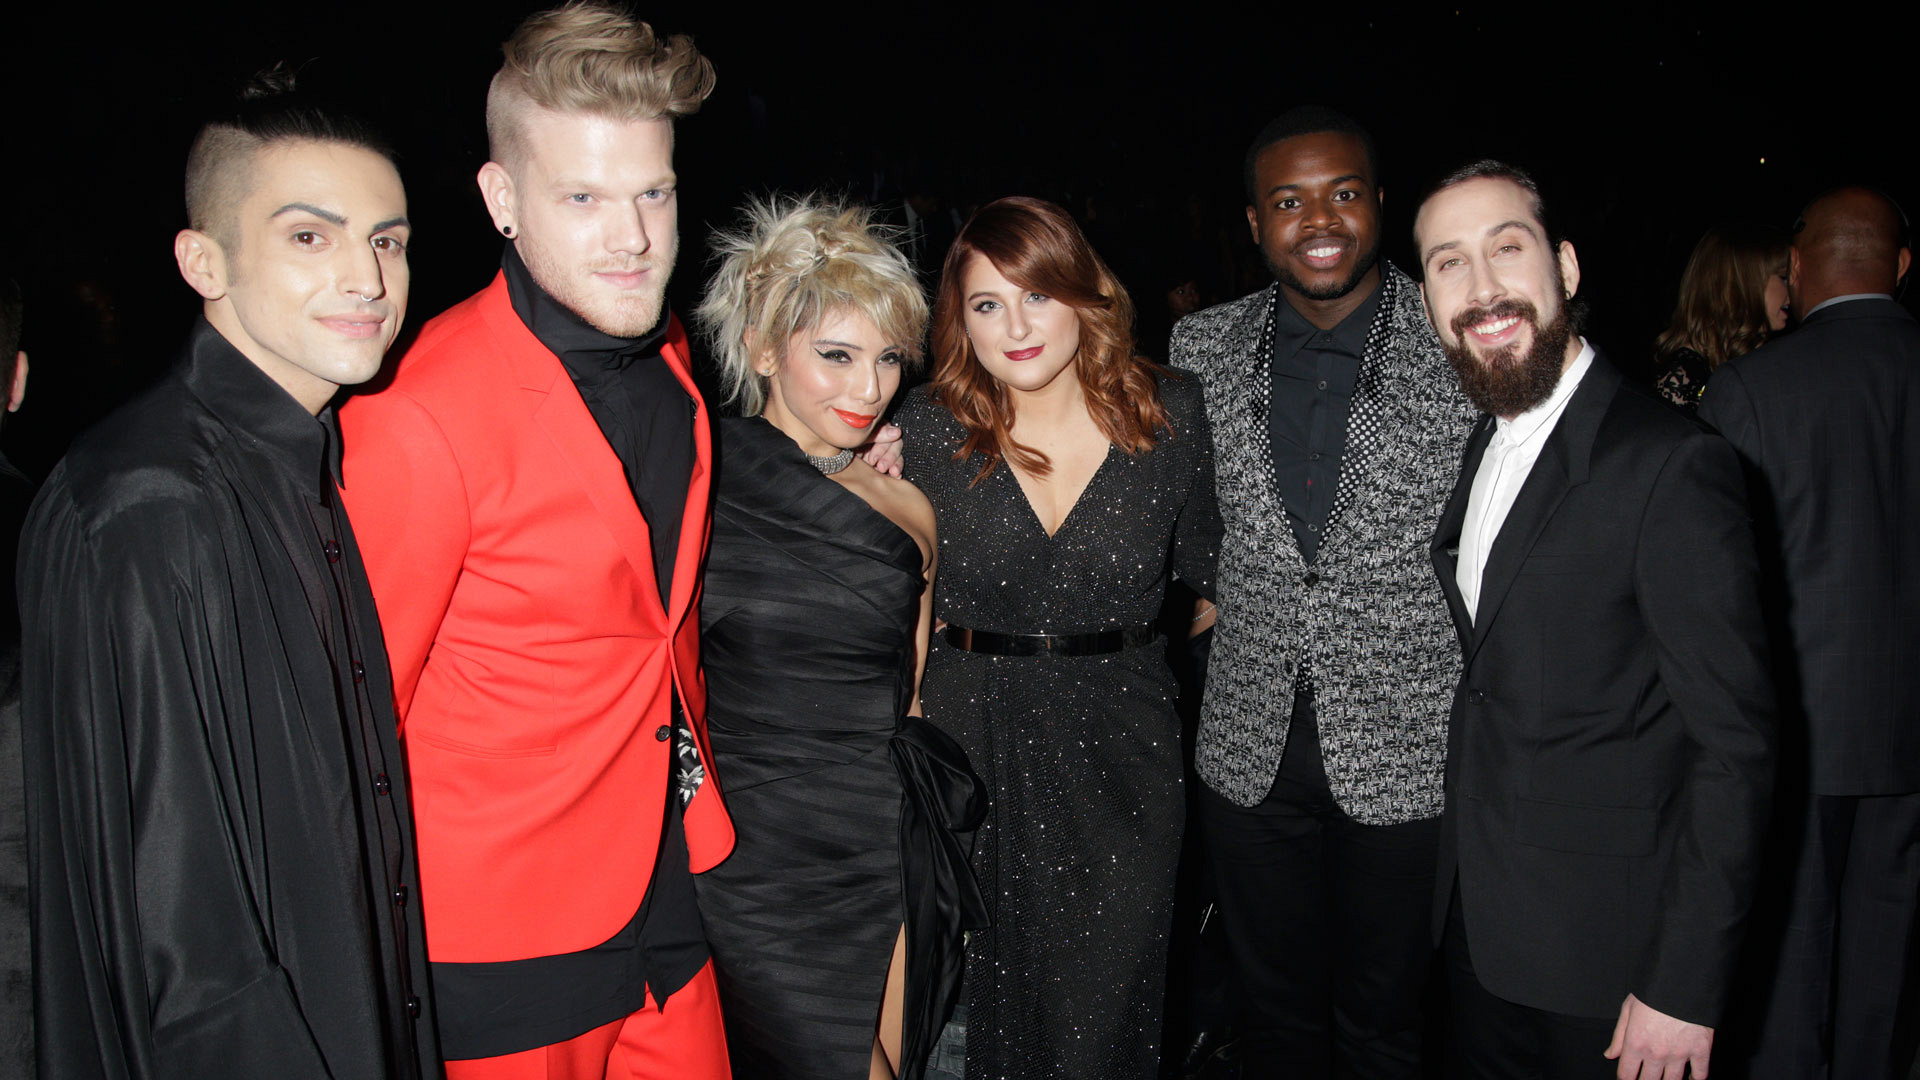 The members of Pentatonix flank either side of Meghan Trainor